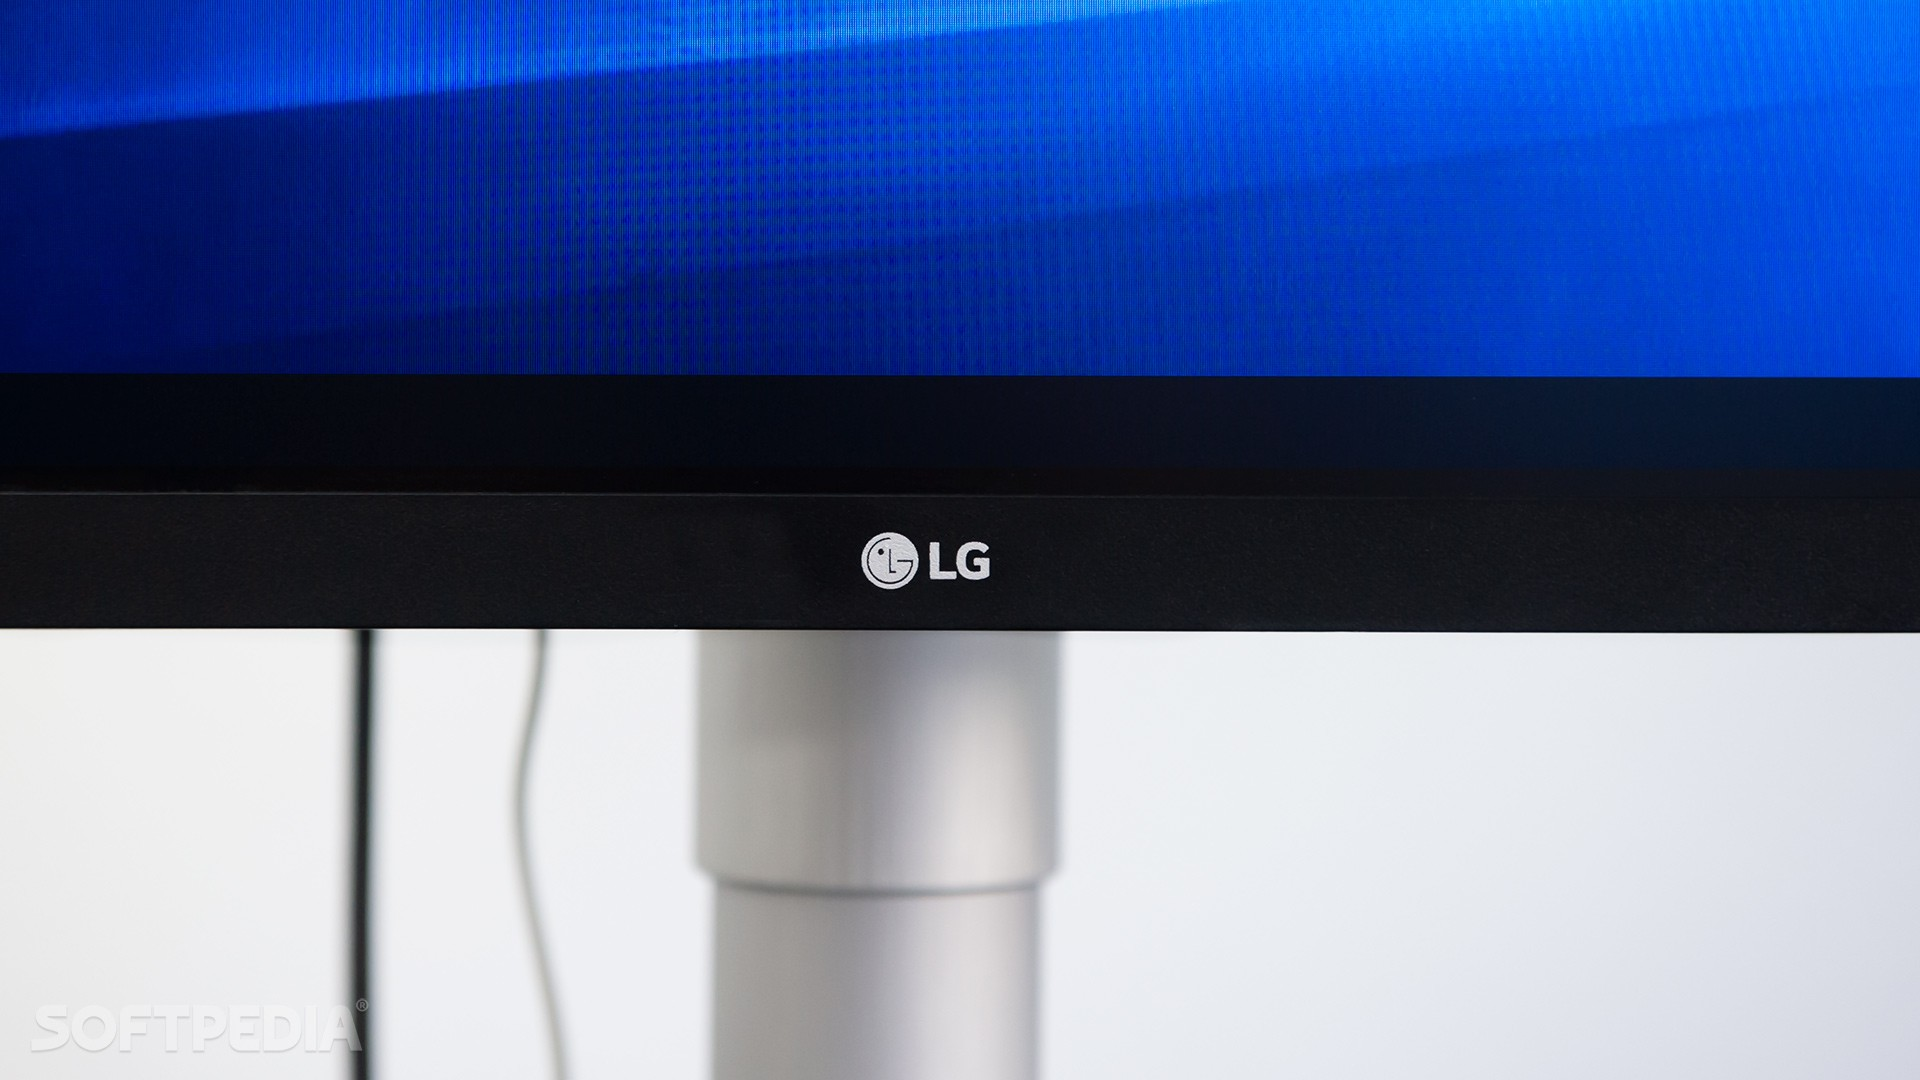 LG 34WK650-W Ultra-Wide Monitor Review - Value and Quality